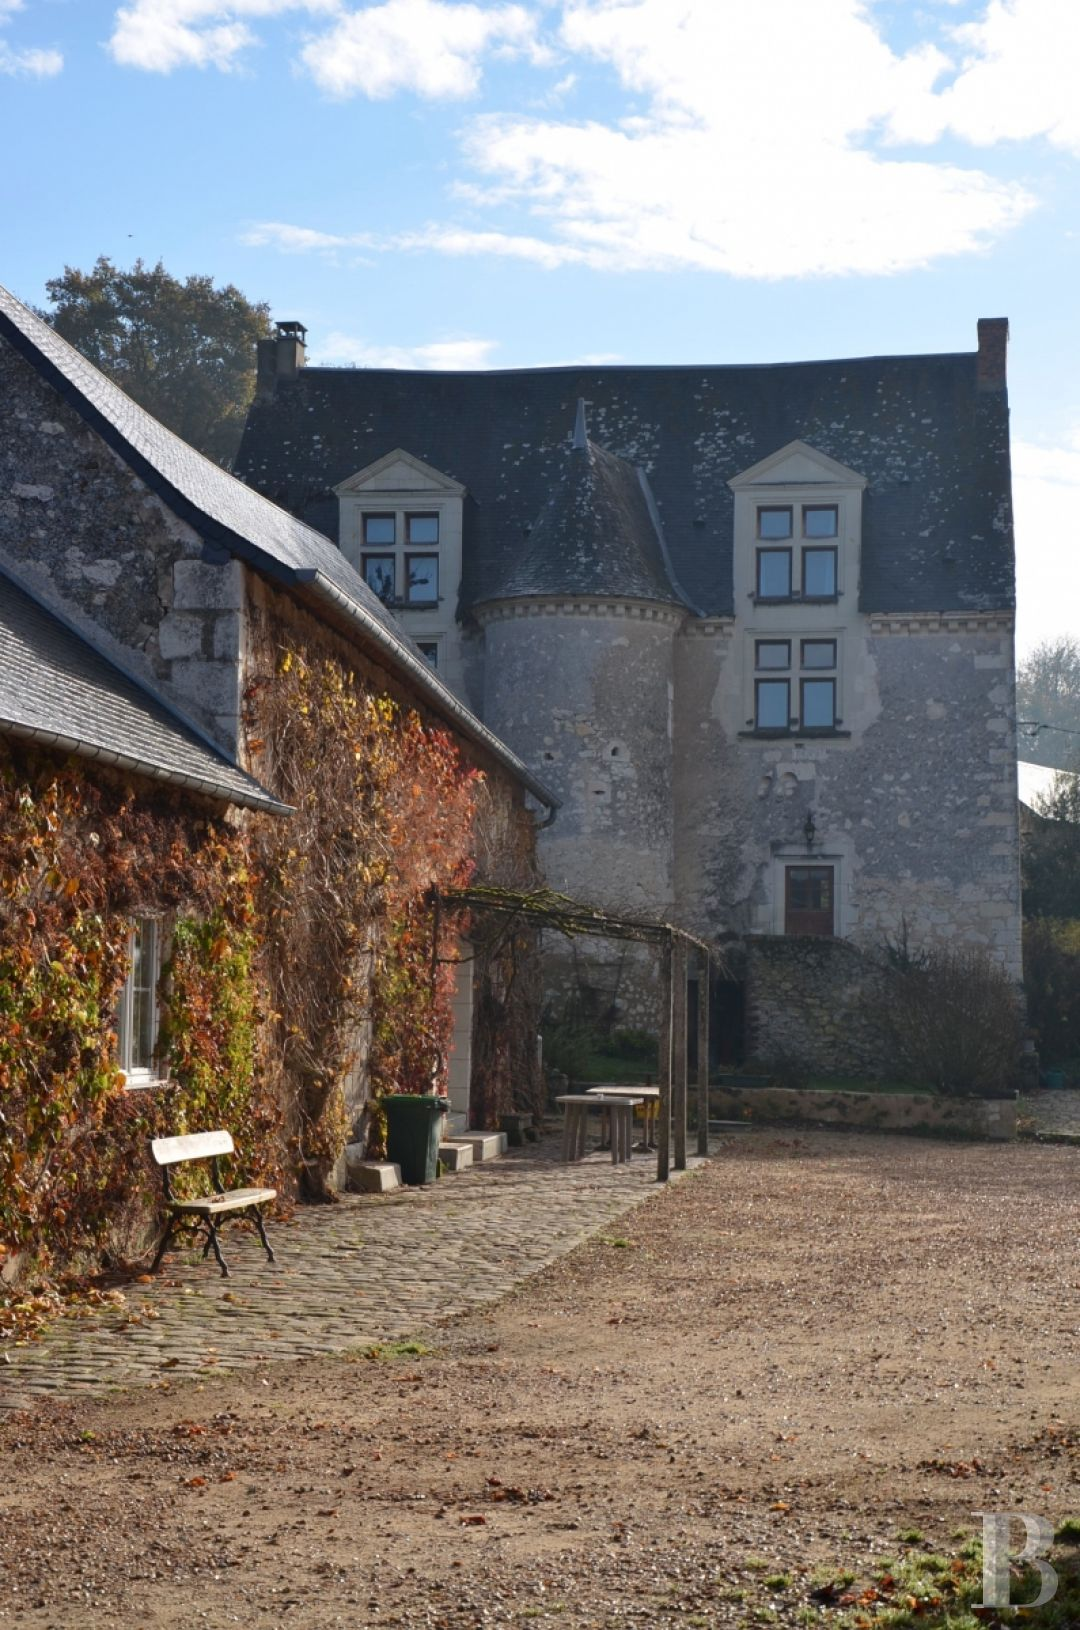 France mansions for sale pays de loire manors farms - 12 zoom